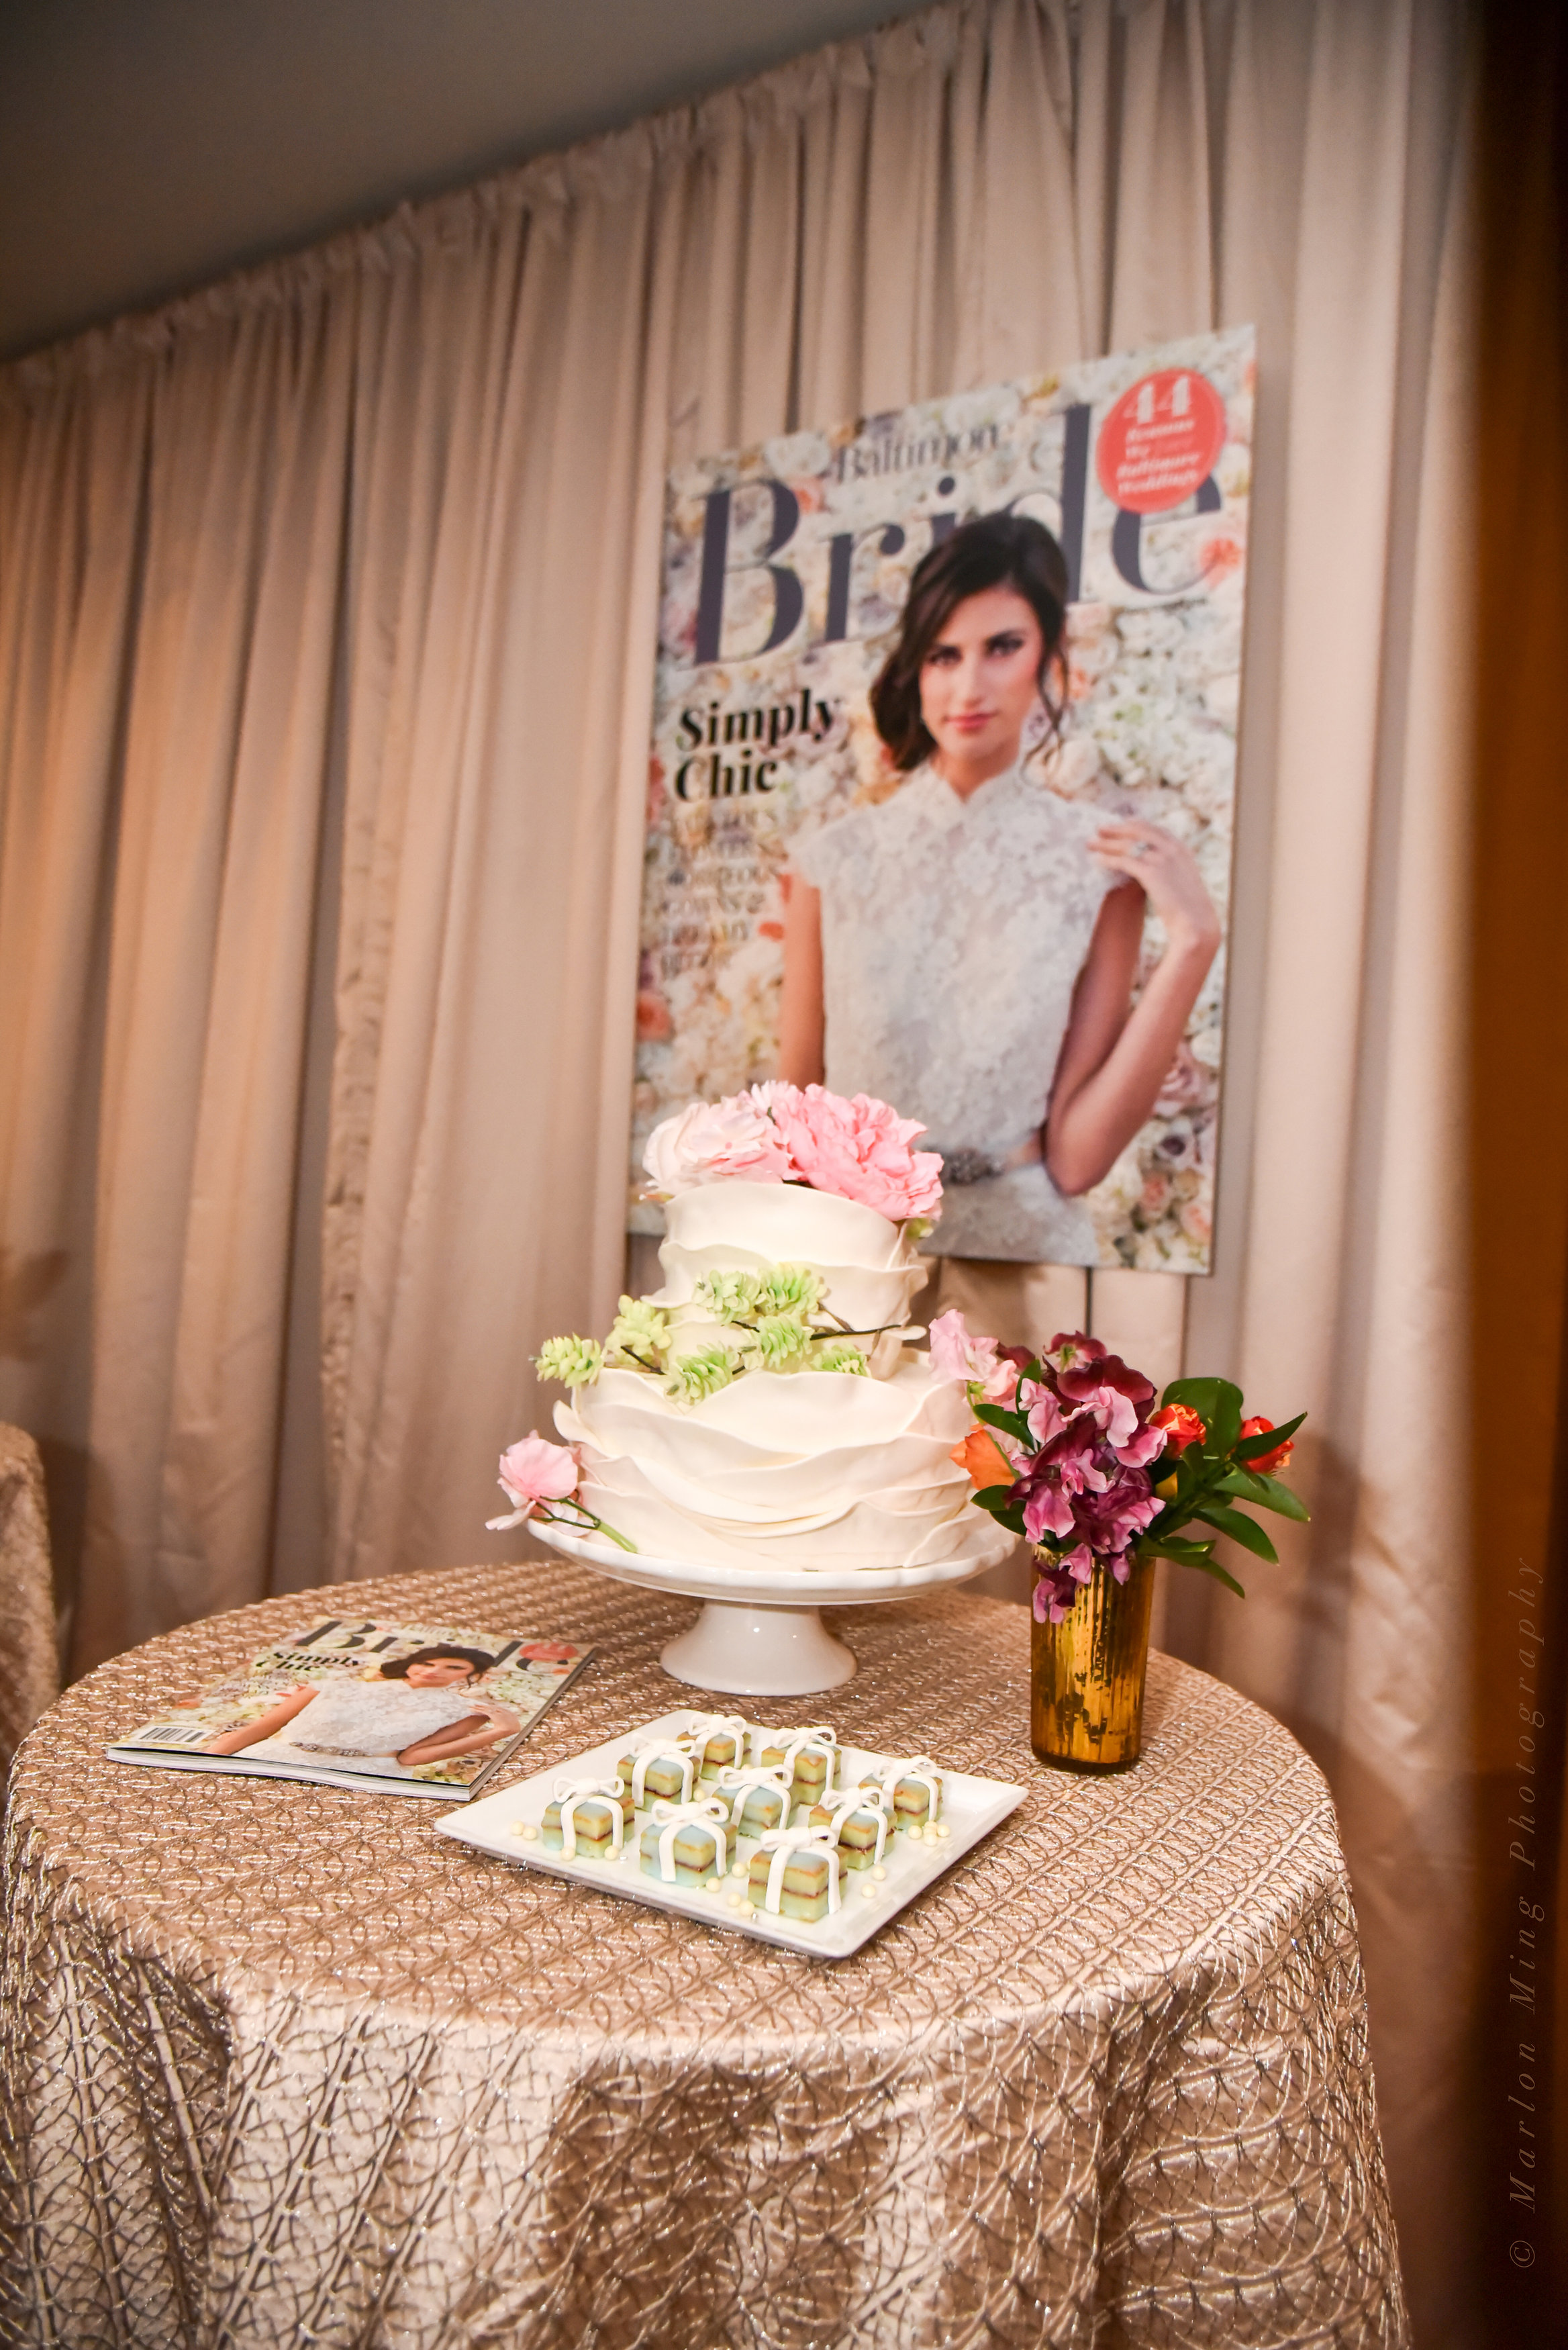 Baltimore Bride - 2016 Launch Party